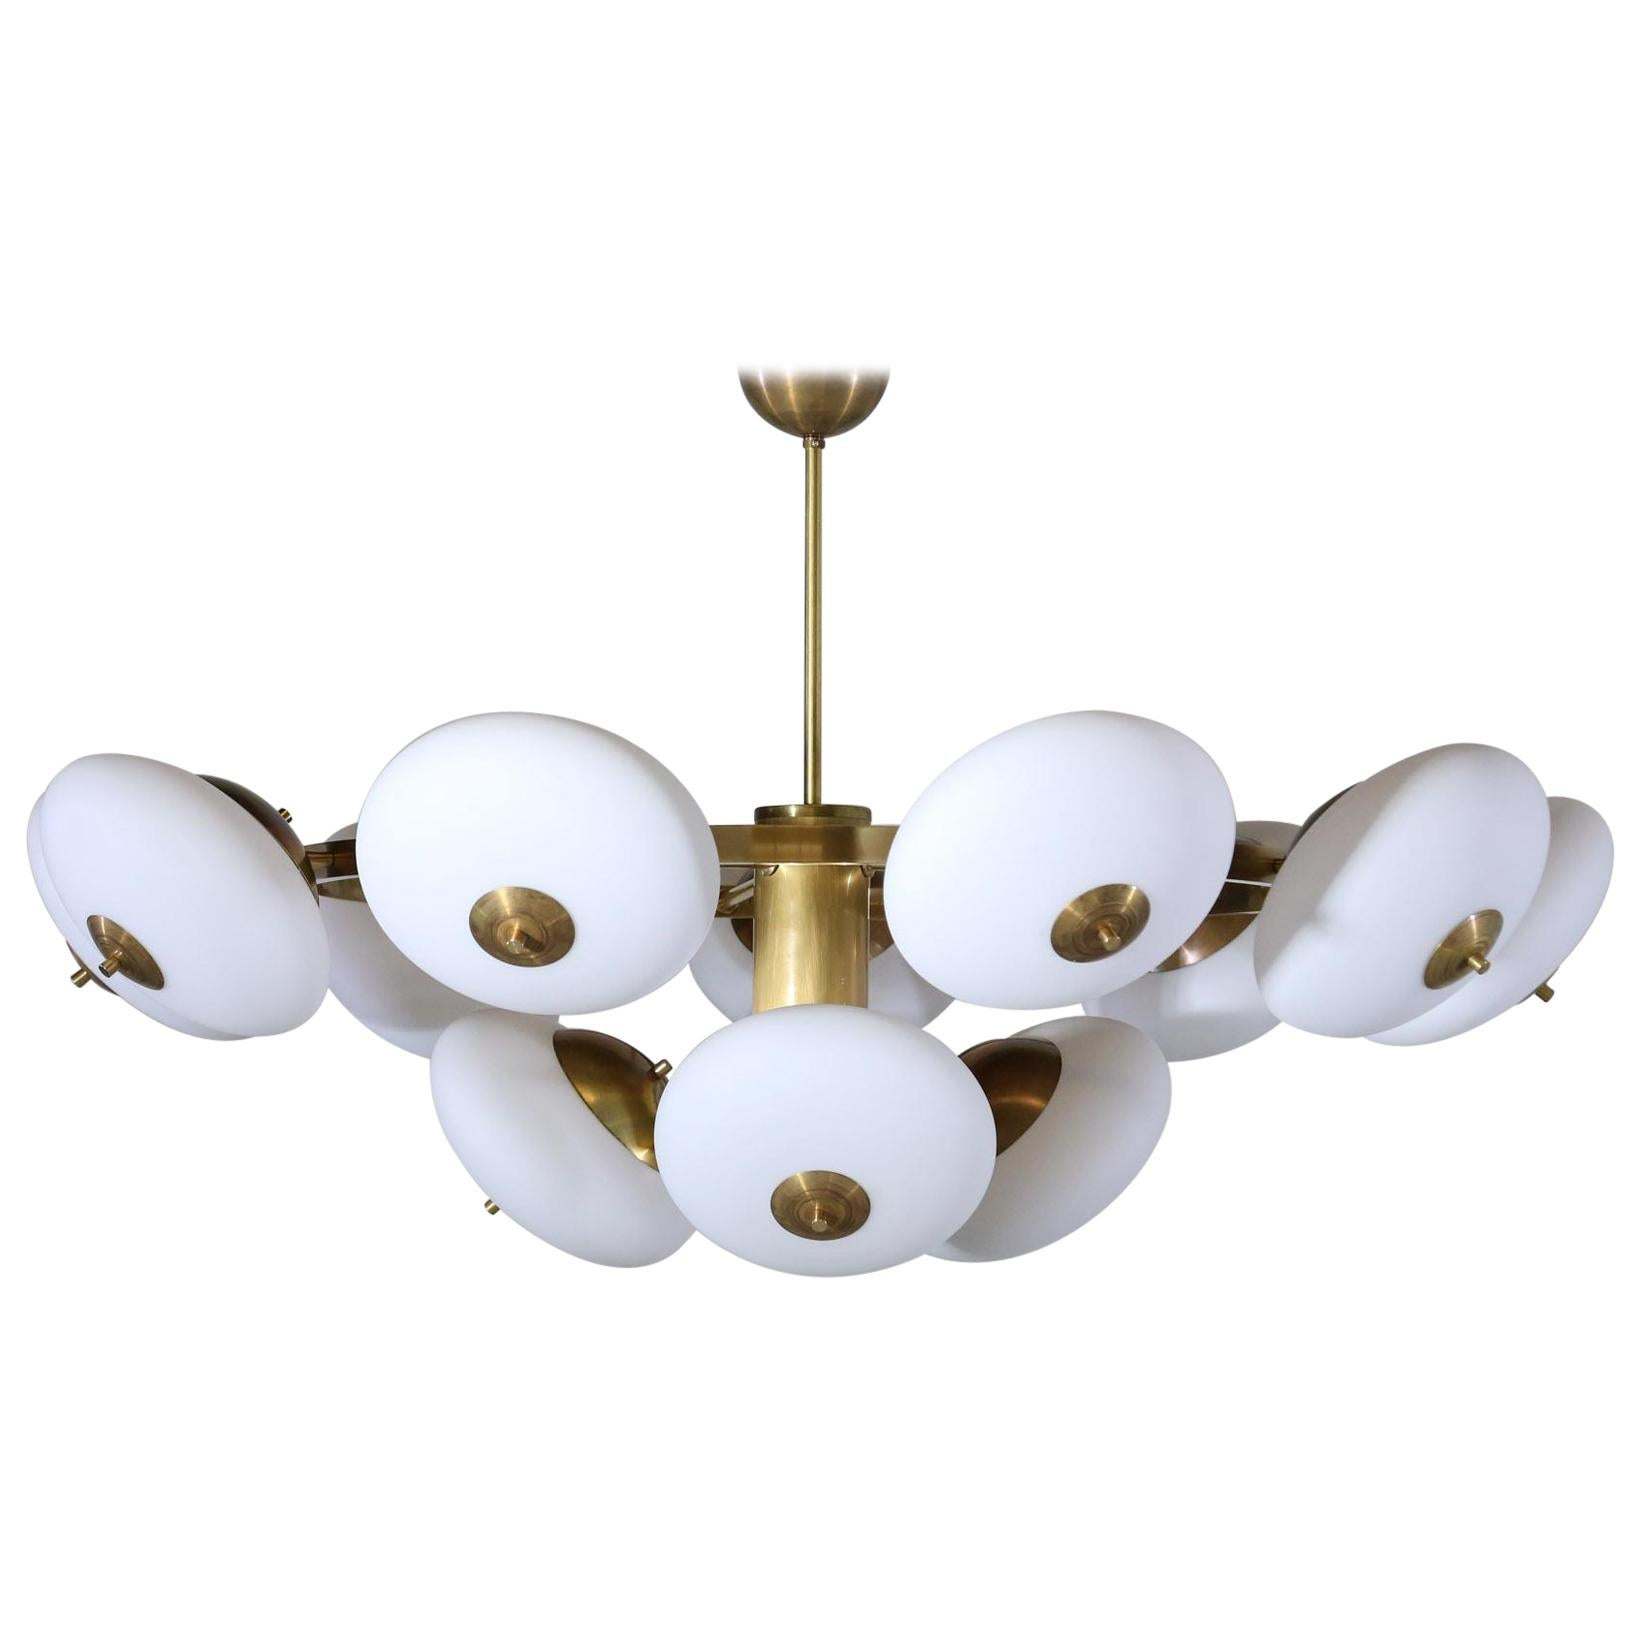 Rare 32 Globe Stilnovo Chandelier | | Stilnovo